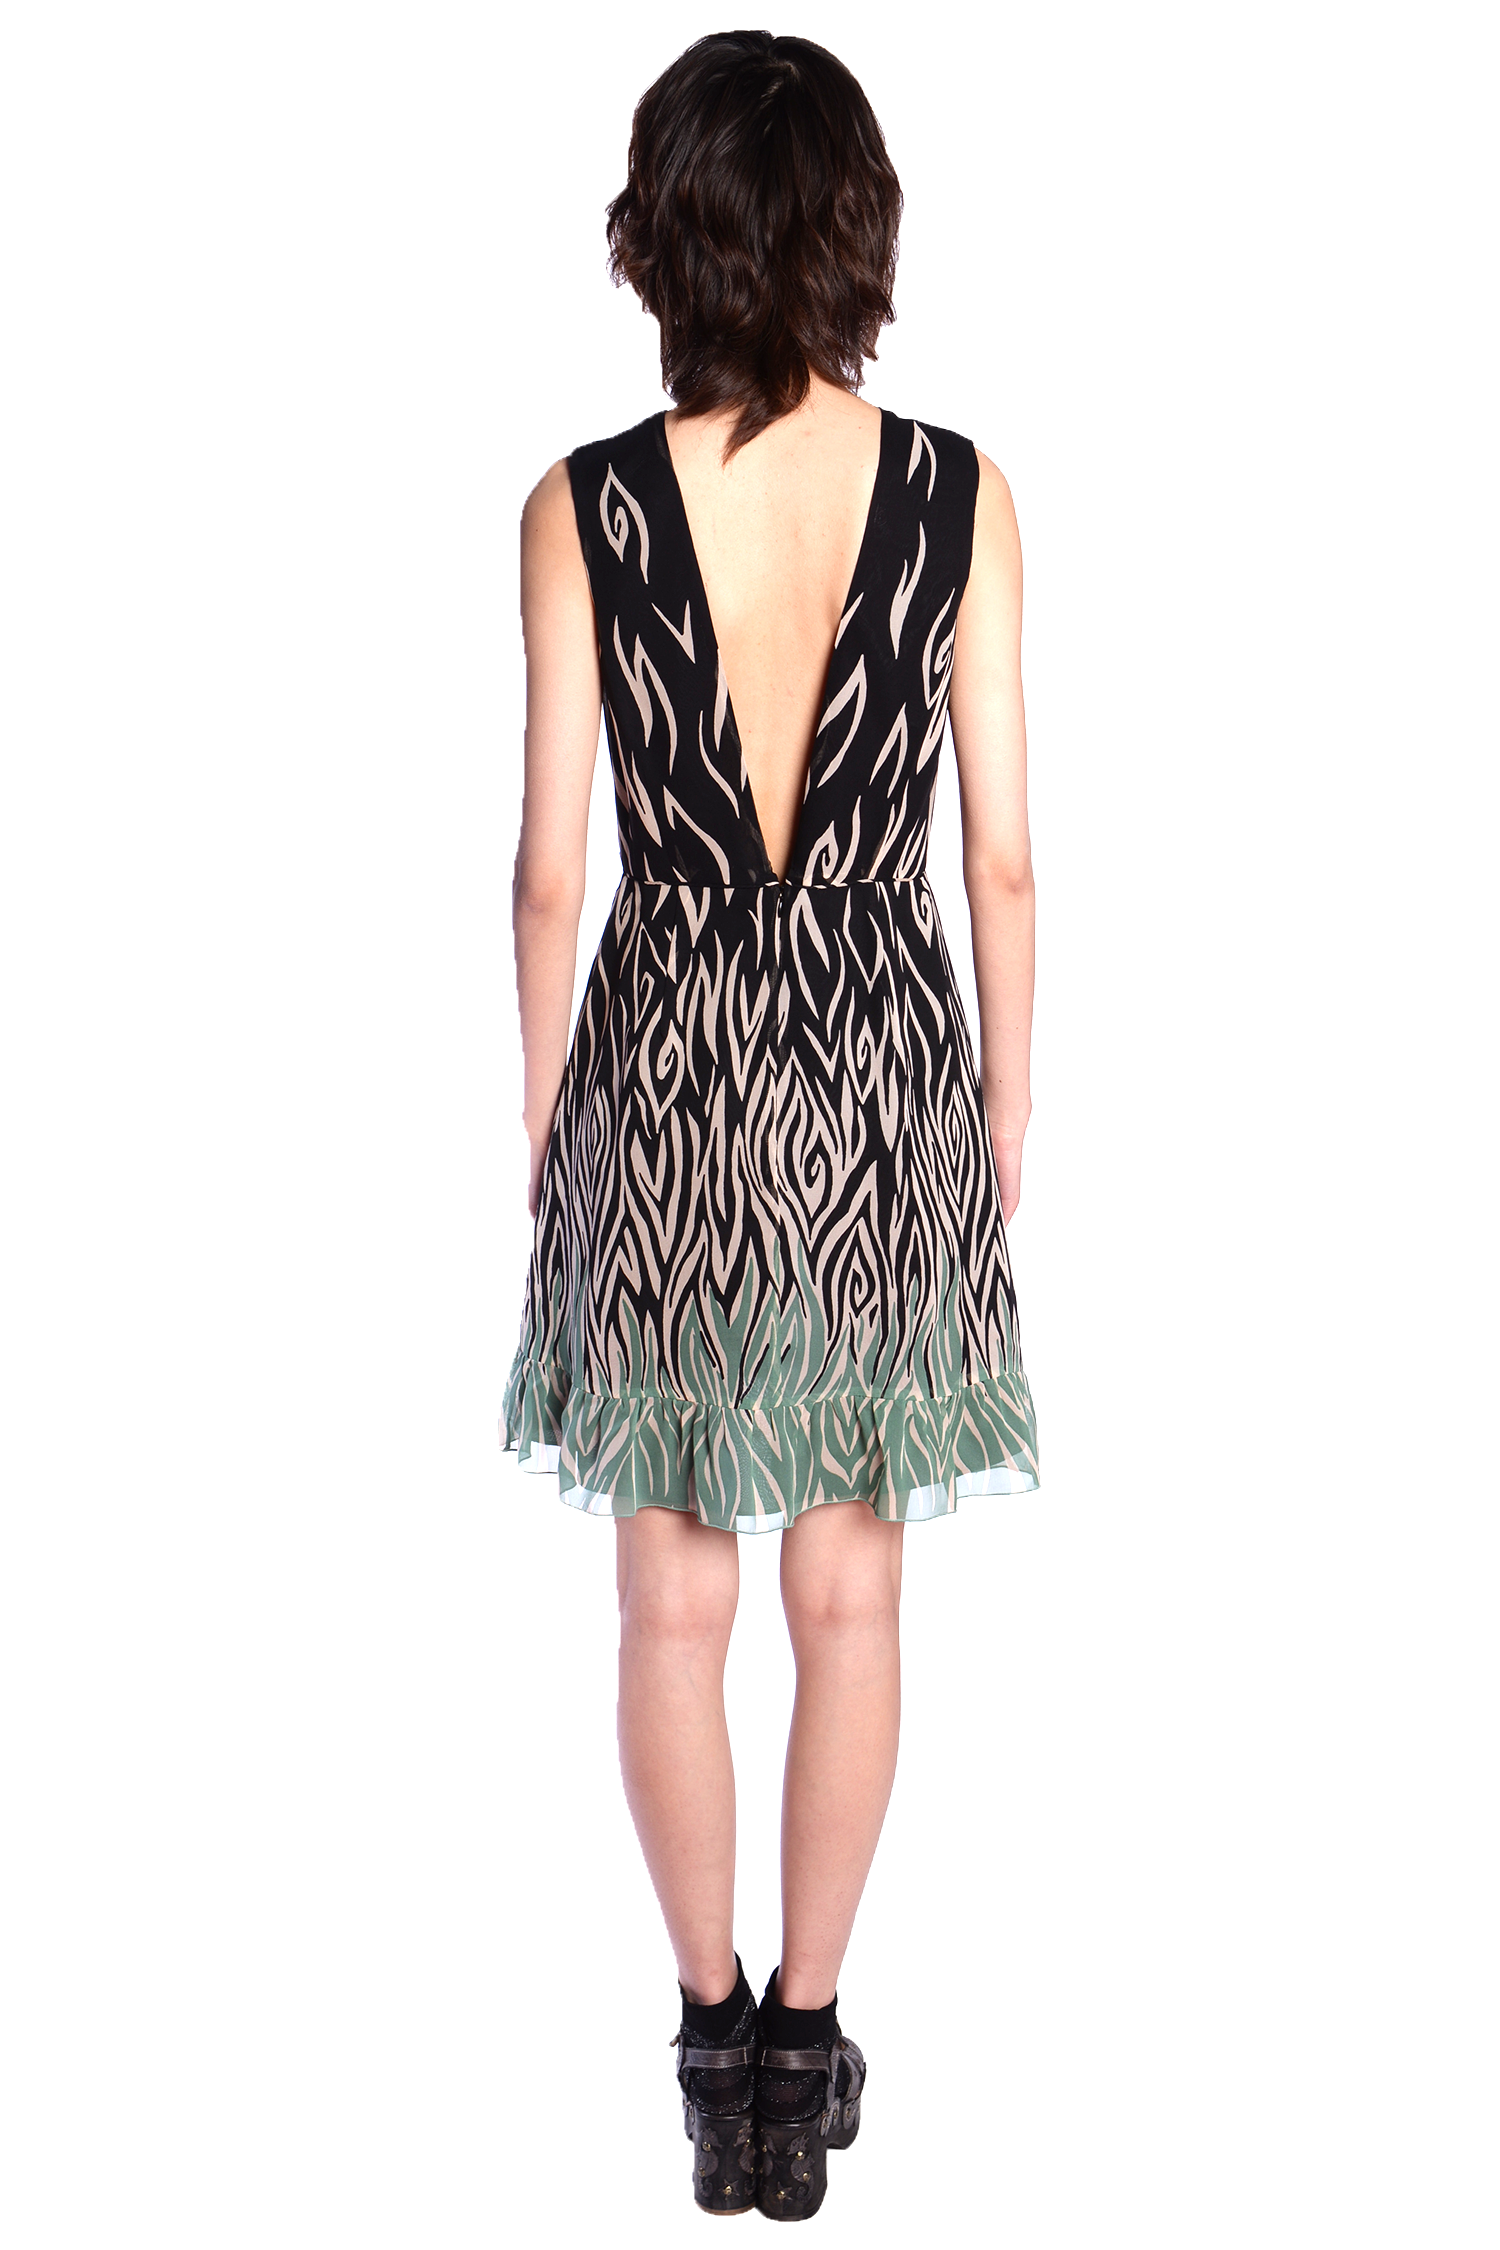 Love's Flame Sleeveless Dress - Anna Sui